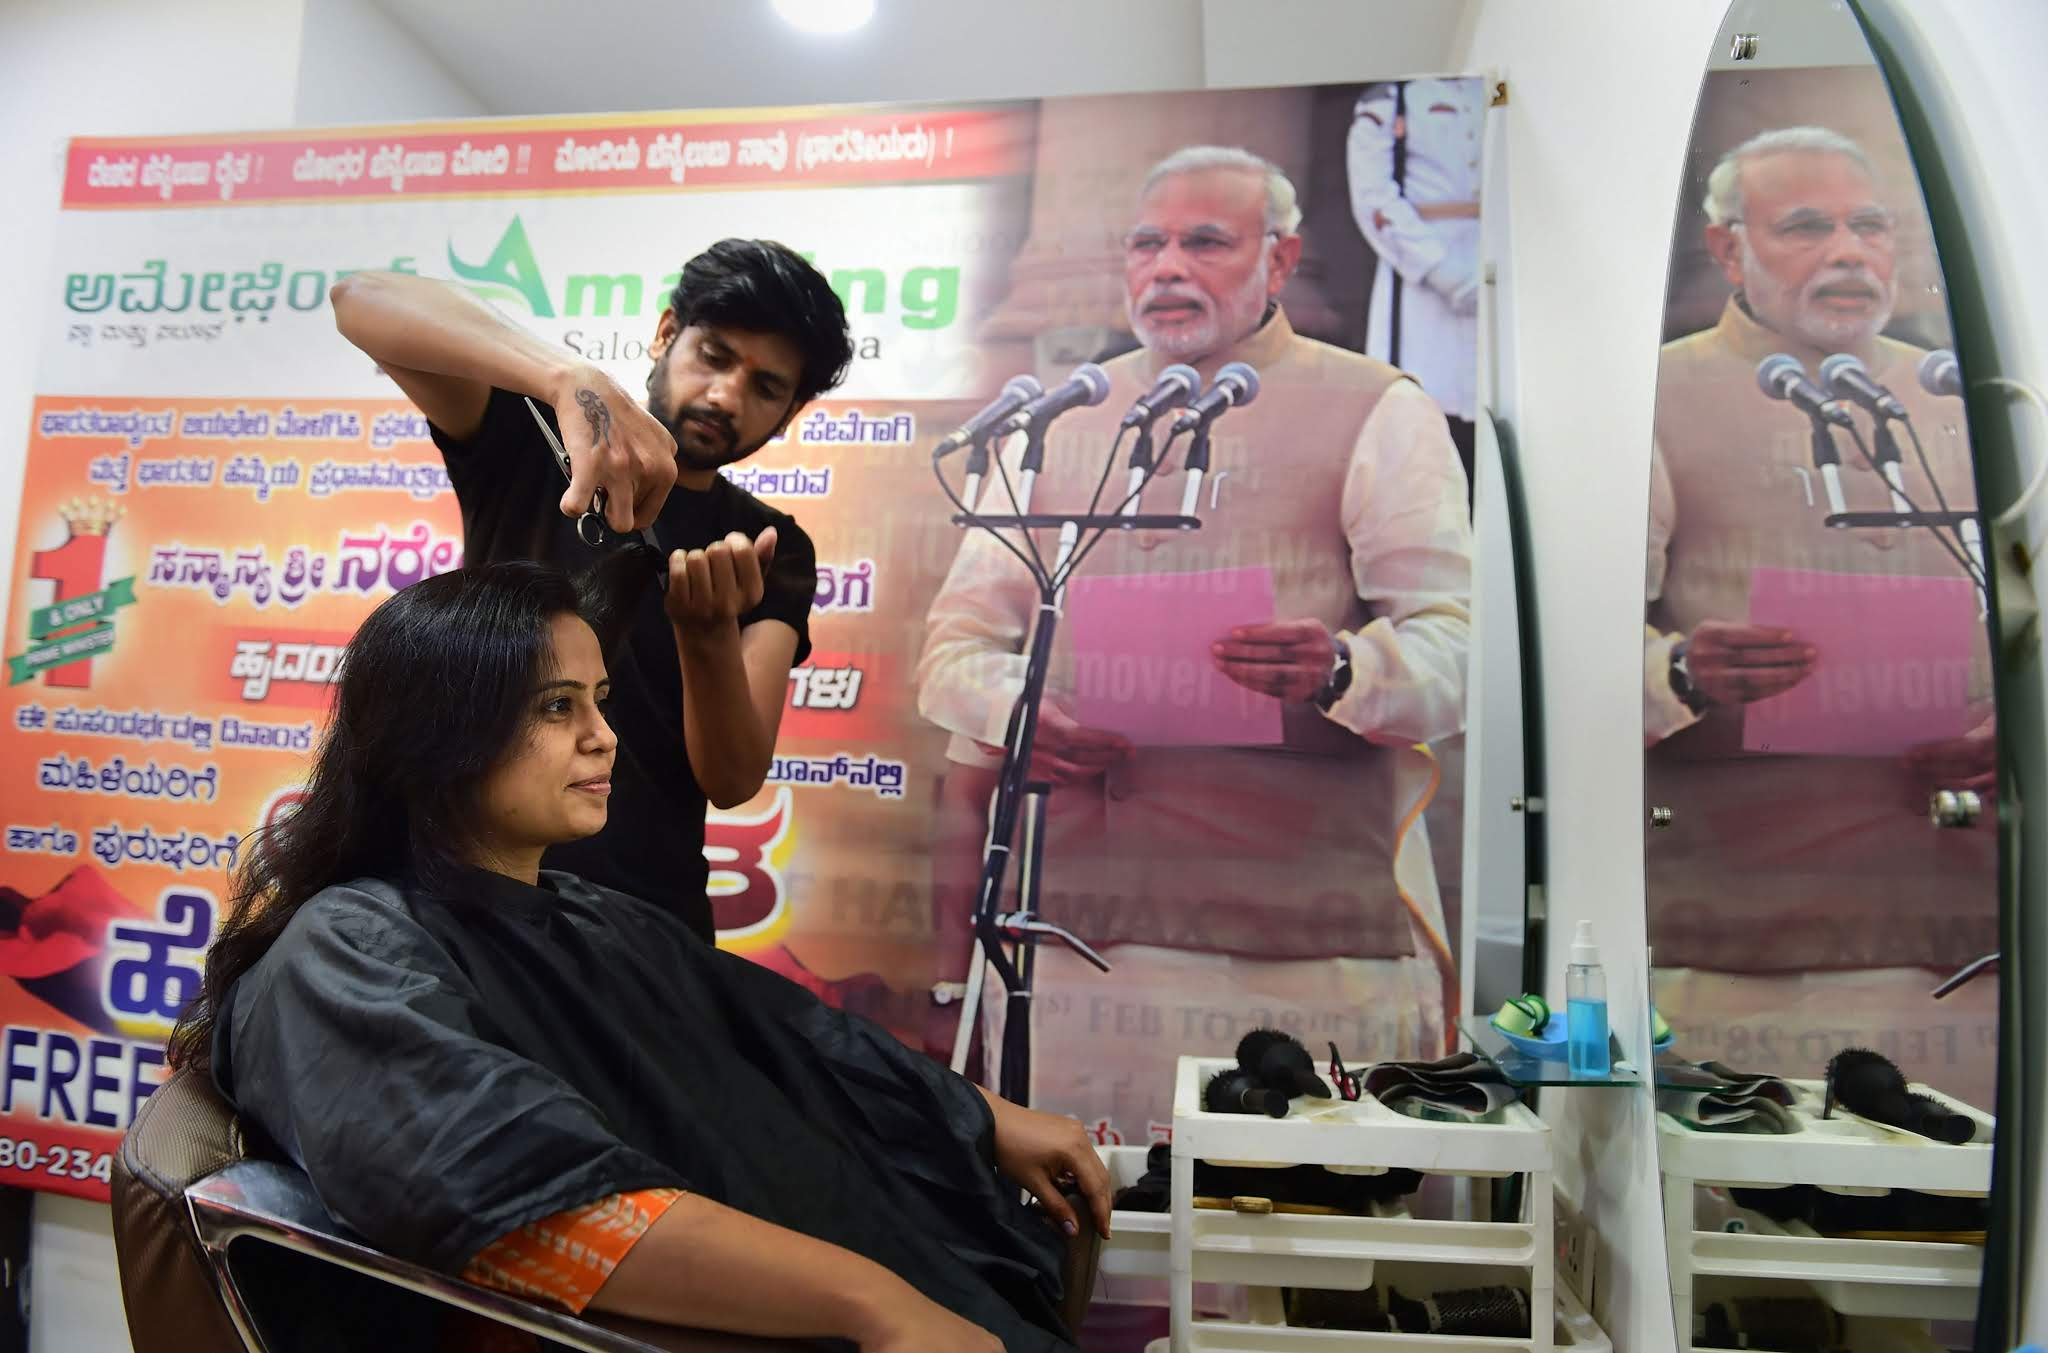 Celebrating the swearing-in ceremony of prime minister Narendra Modi, salon gives free haircut to customers